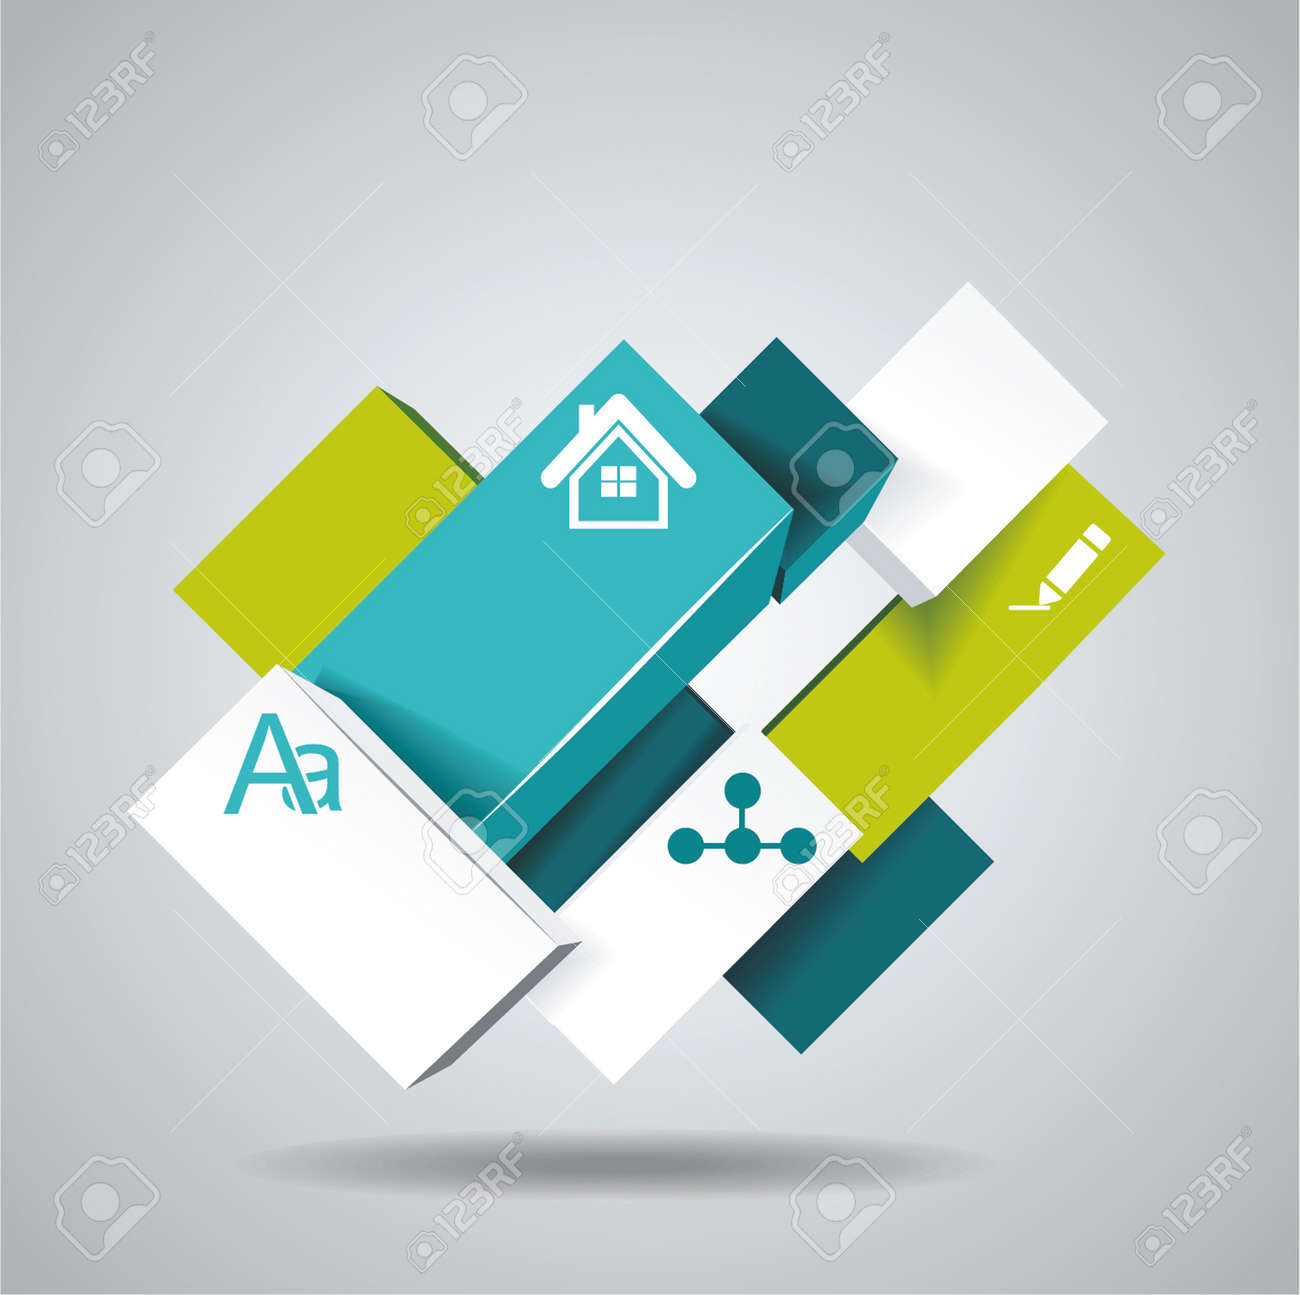 Vector illustration of 3d cubes, can use for infographics or webpage. Stock Vector - 21234536